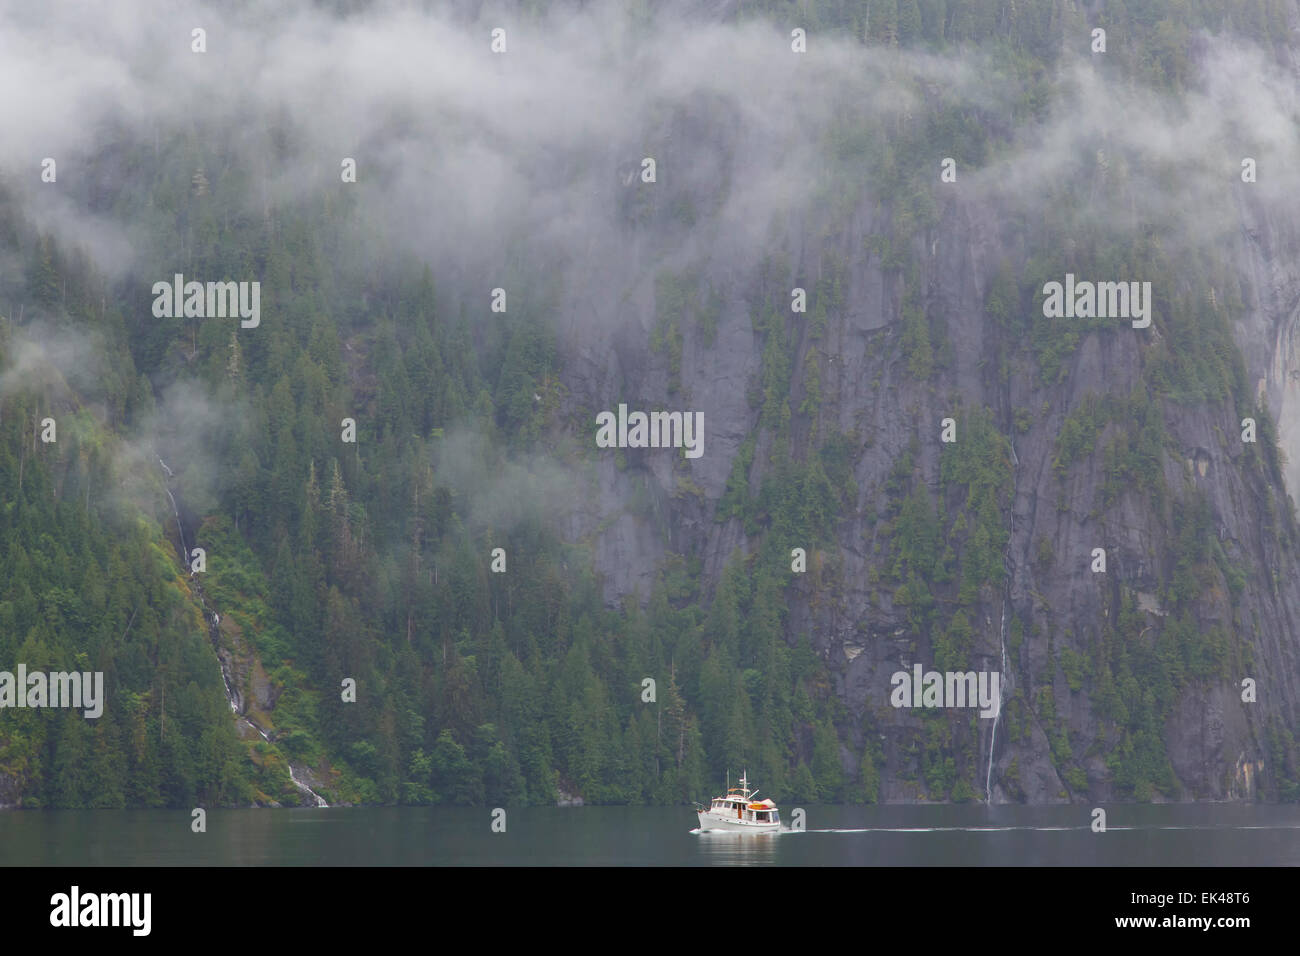 Boating in Misty Fiords National Monument, Ketchikan, Alaska. - Stock Image